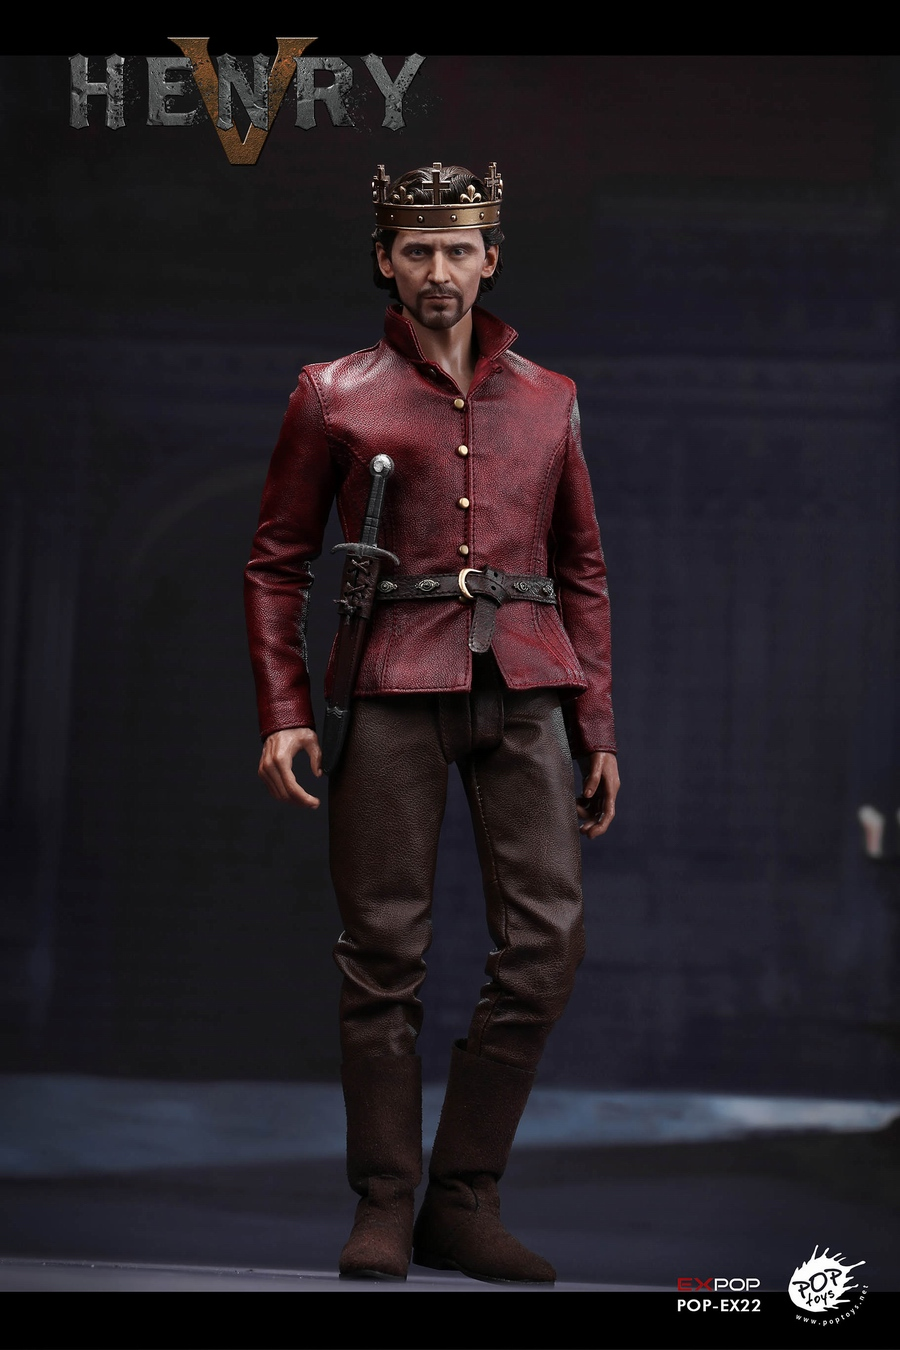 TVbased - NEW PRODUCT: POPTOYS [WF2019 Shanghai Conference Edition]: 1/6 King of England - Henry V [The Throne Edition] POP-EX22 17591710